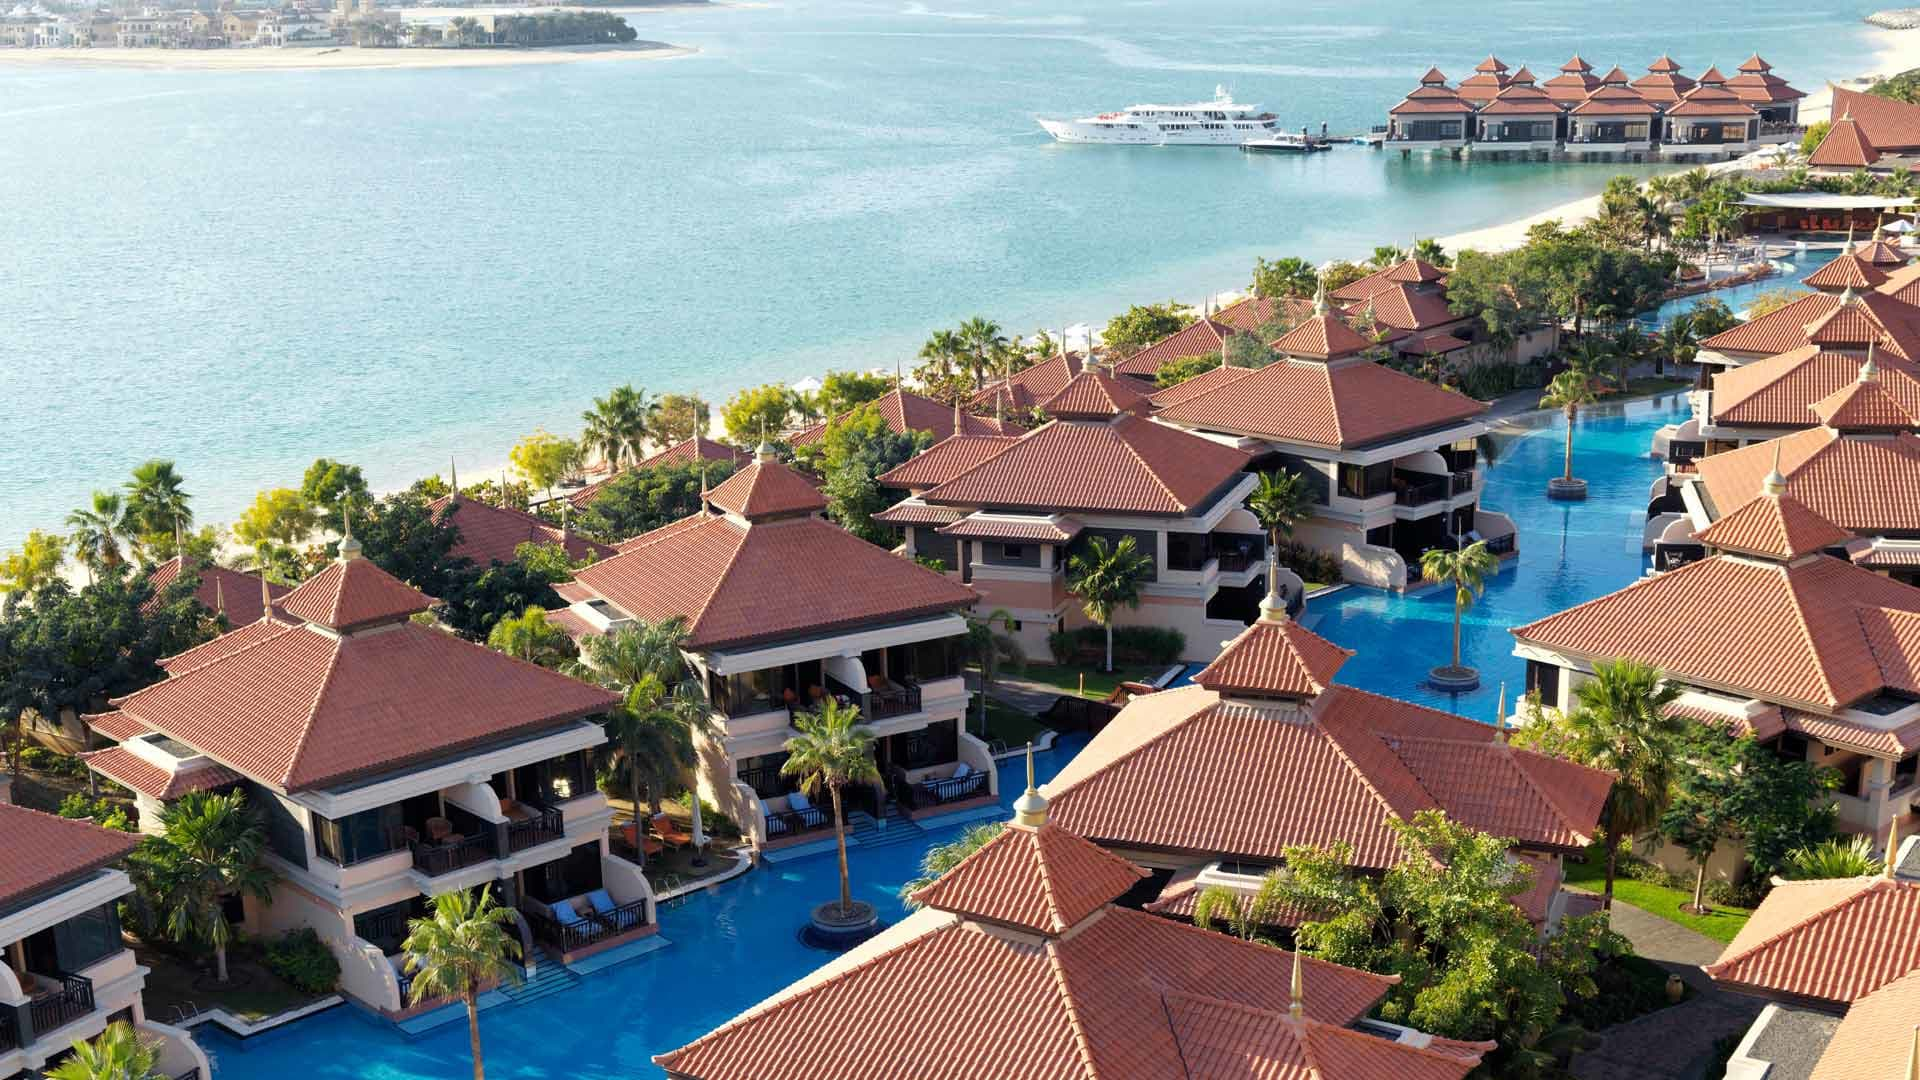 https://assets.anantara.com/image/upload/q_auto/media/minor/anantara/images/anantara-the-palm-dubai-resort/the-resort/anantara_the_palm_exterior_desktop_banner_new_1920x1080.jpg